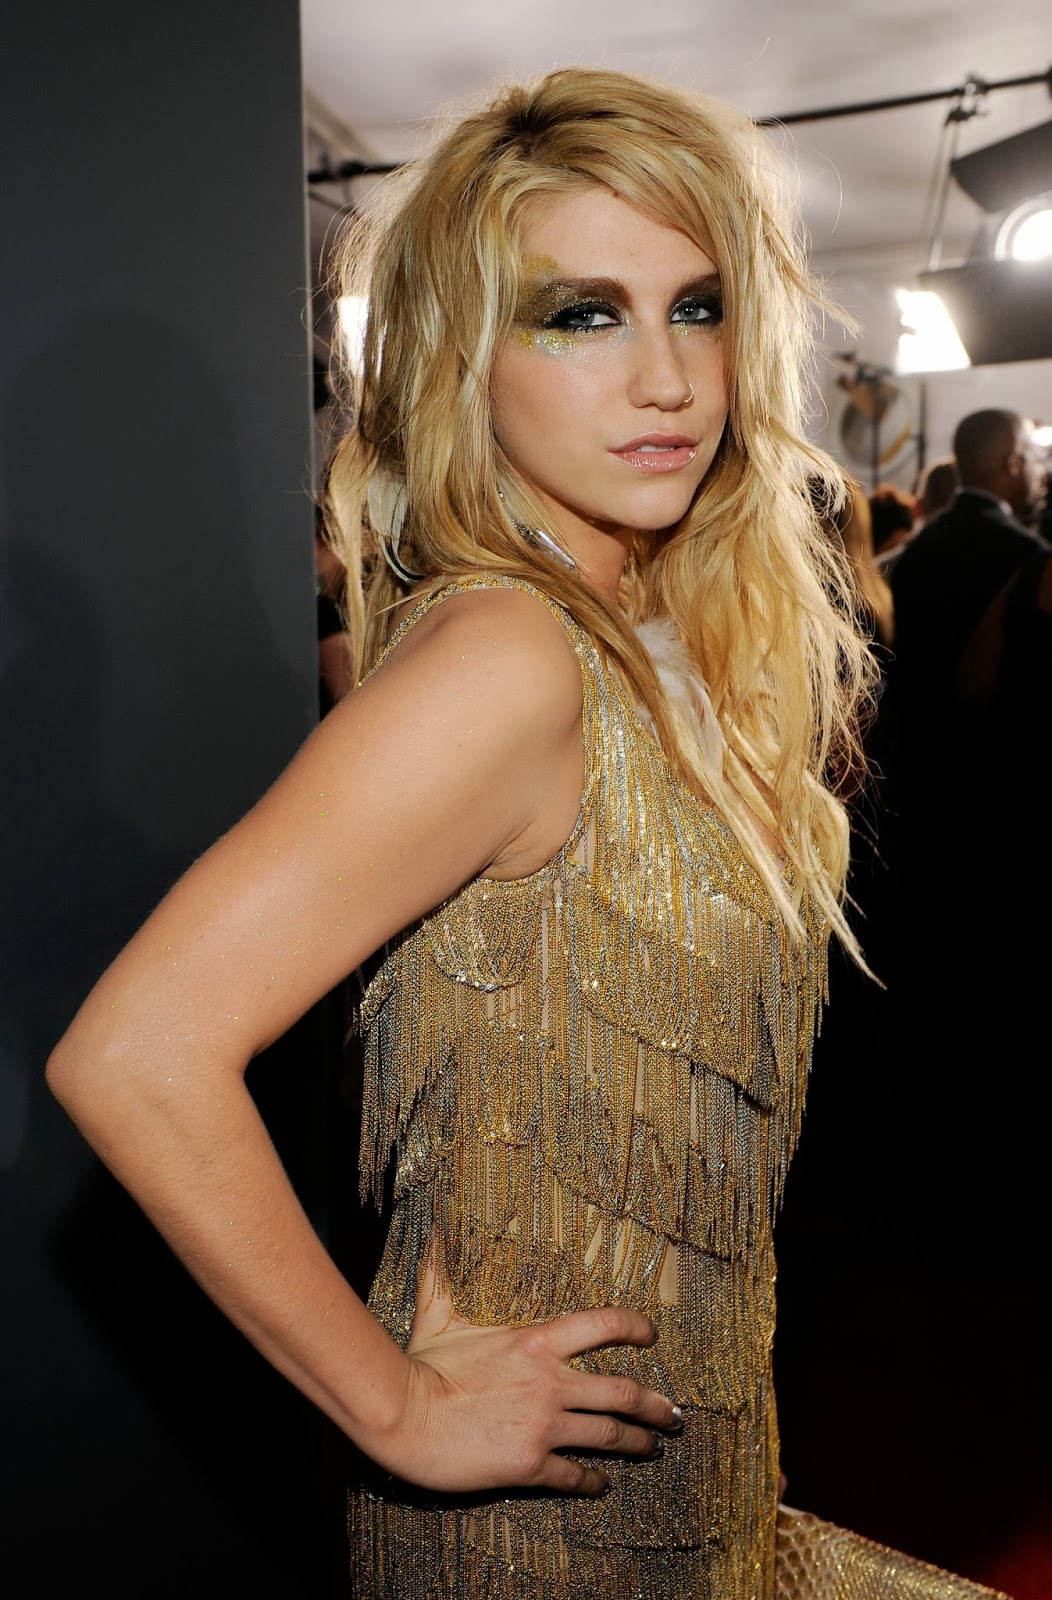 Kesha Topless Nude Boobs Exposed In Transparent Dress In